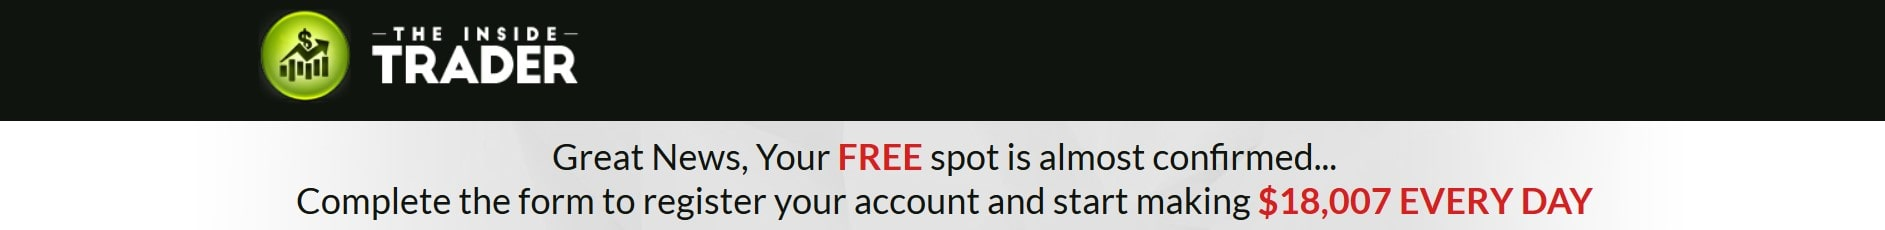 free spot almost confirmed